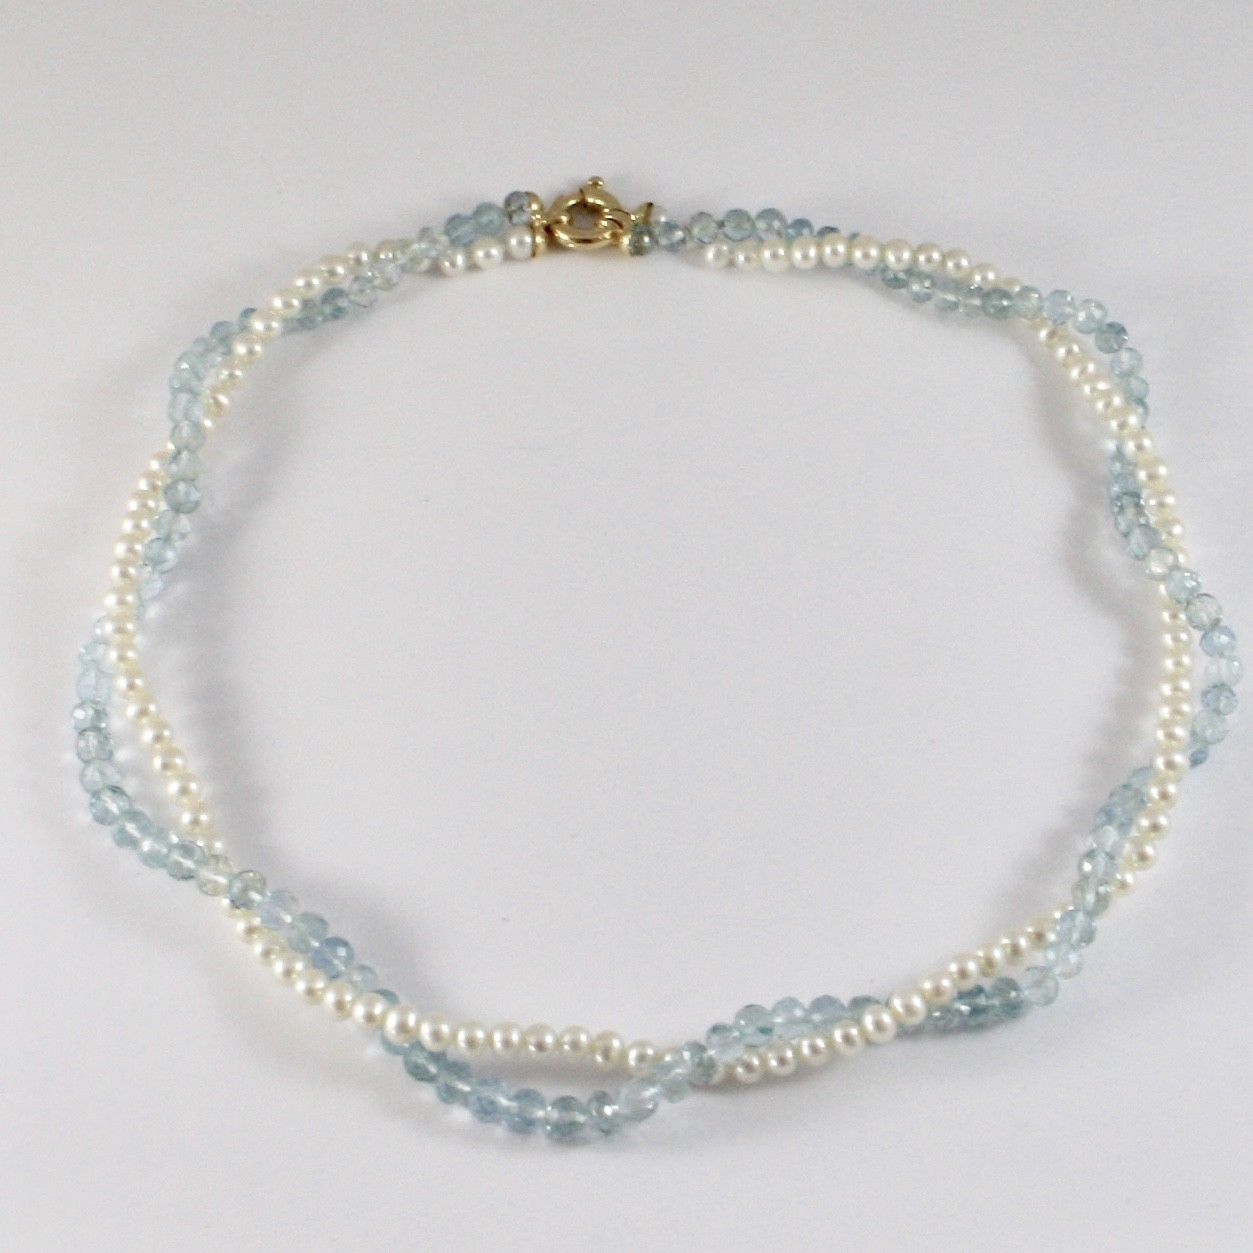 NECKLACE YELLOW GOLD 18KT WITH PEARLS WHITE AND AQUAMARINE FACETED